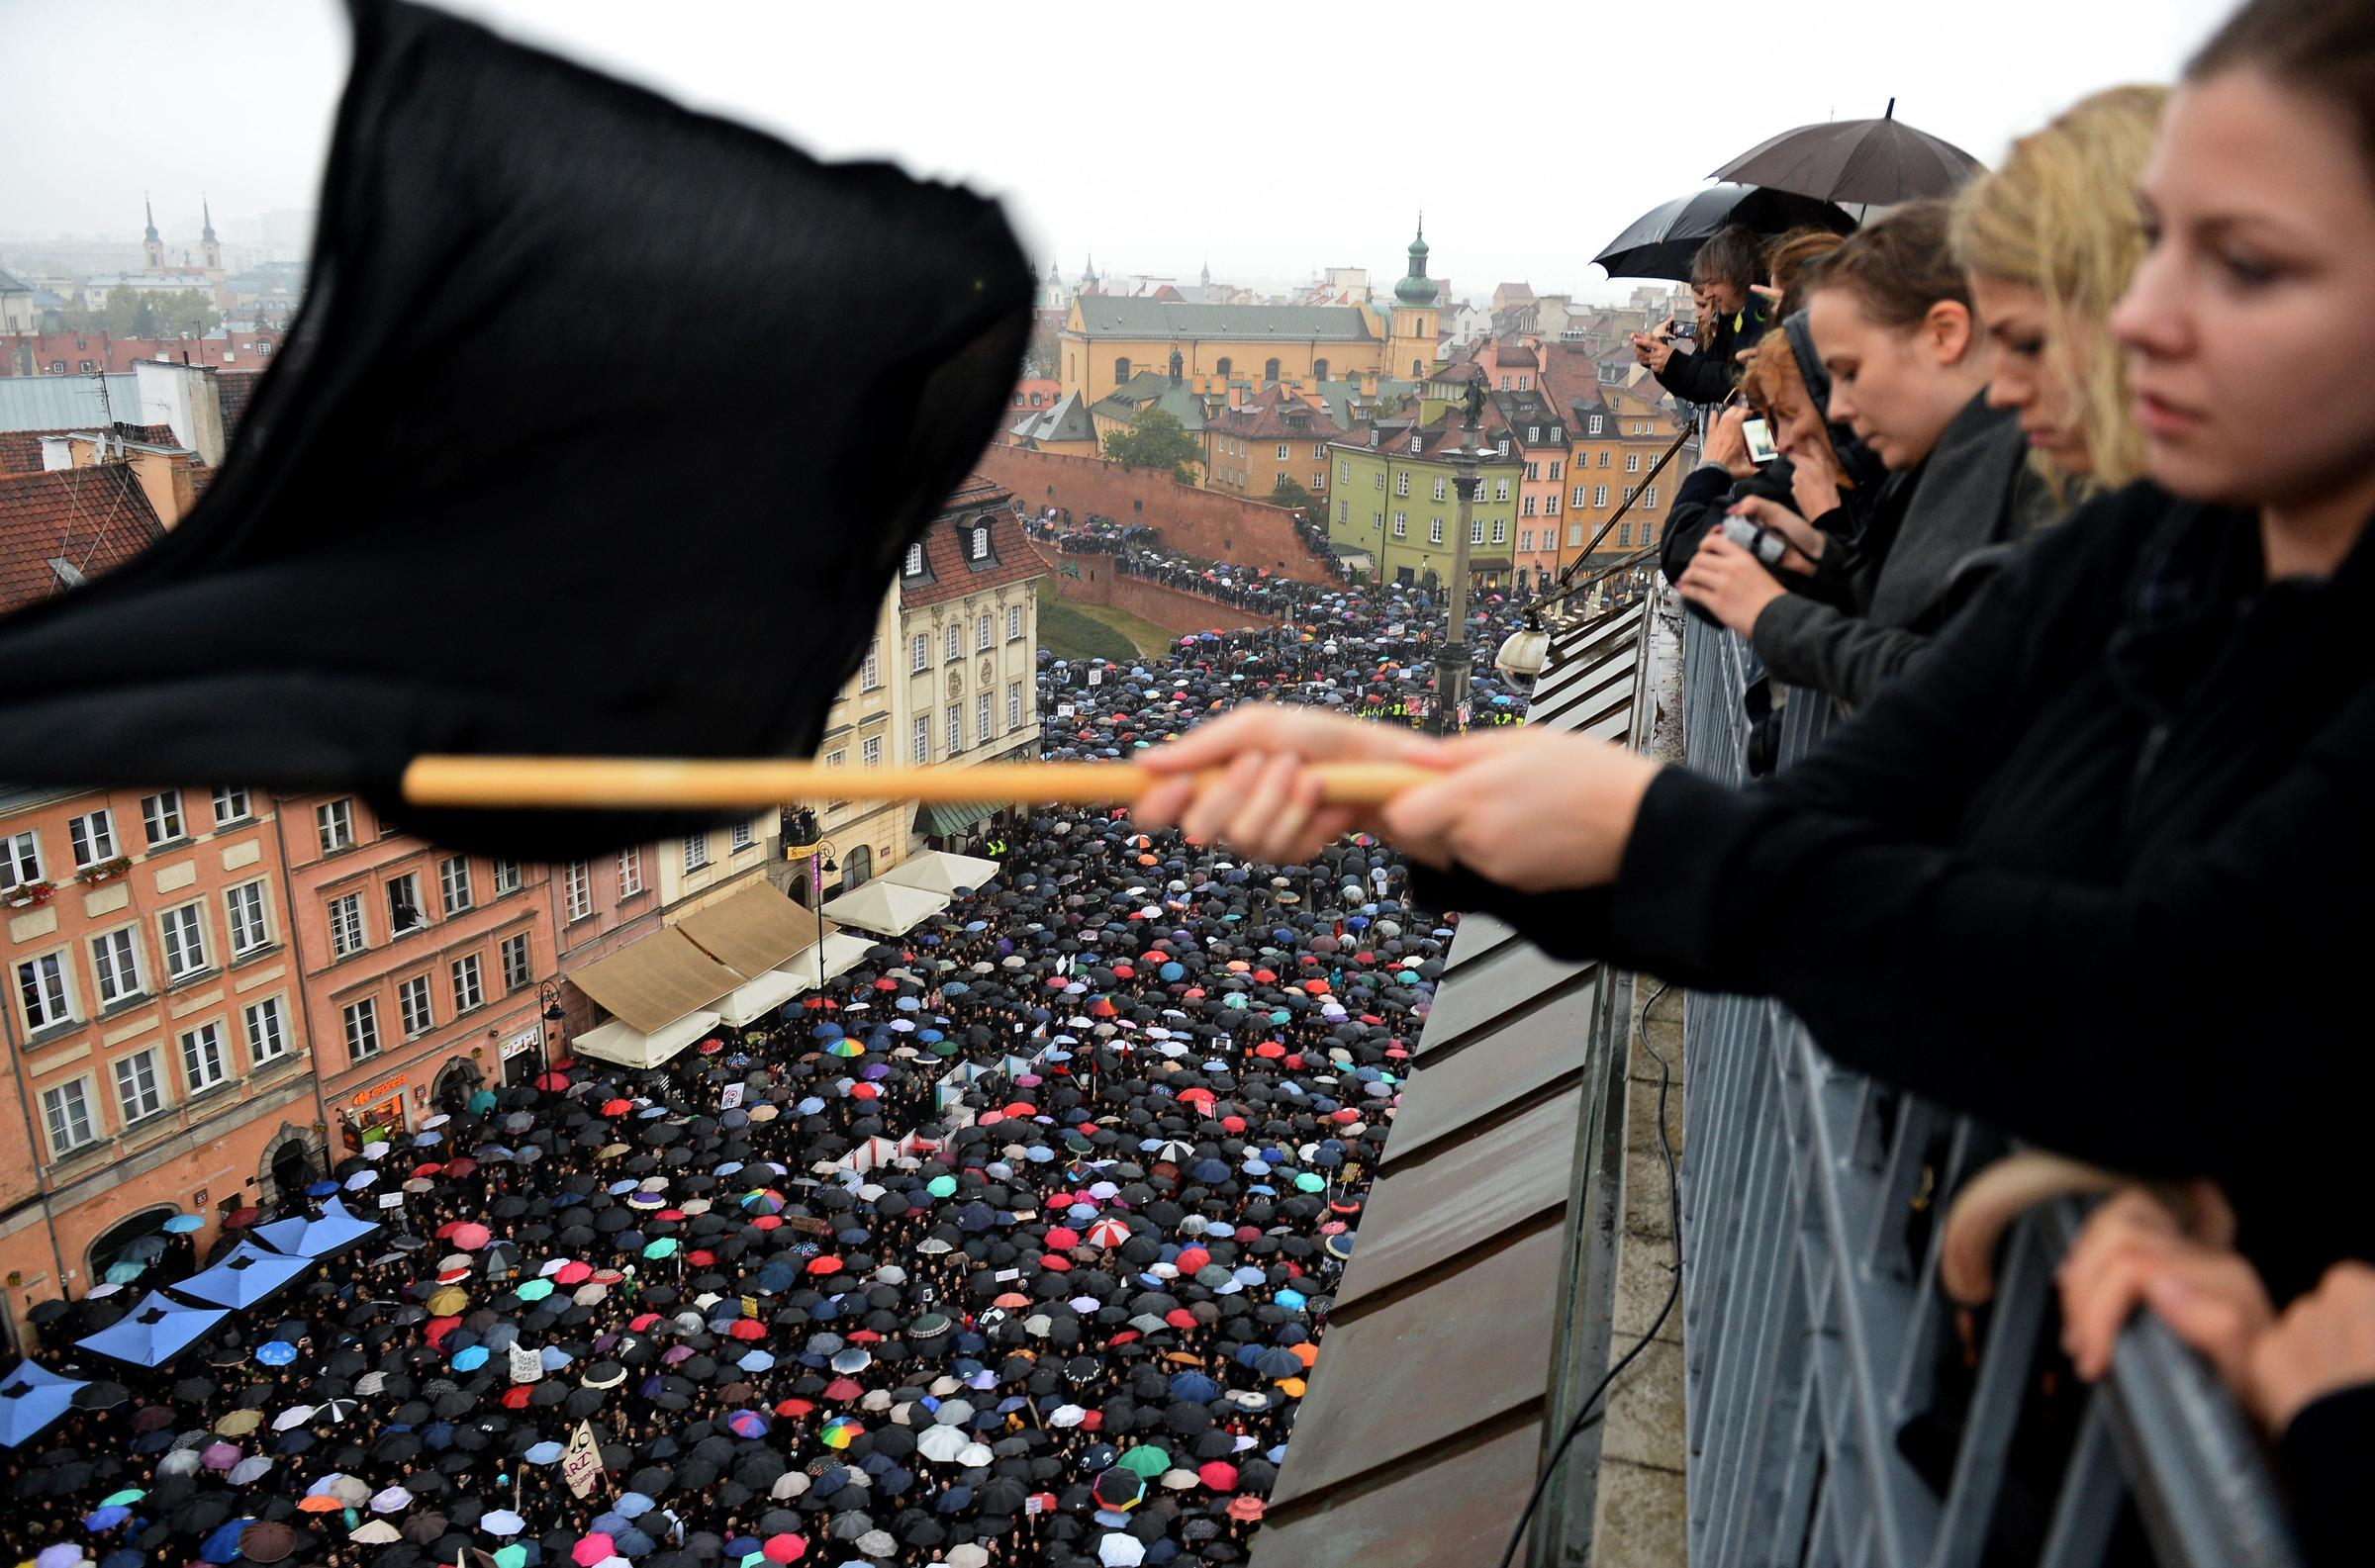 A girl waves a black flag on Monday as people in Warsaw take part in a nationwide strike and demonstration to protest against a legislative proposal for a total ban of abortionin Poland